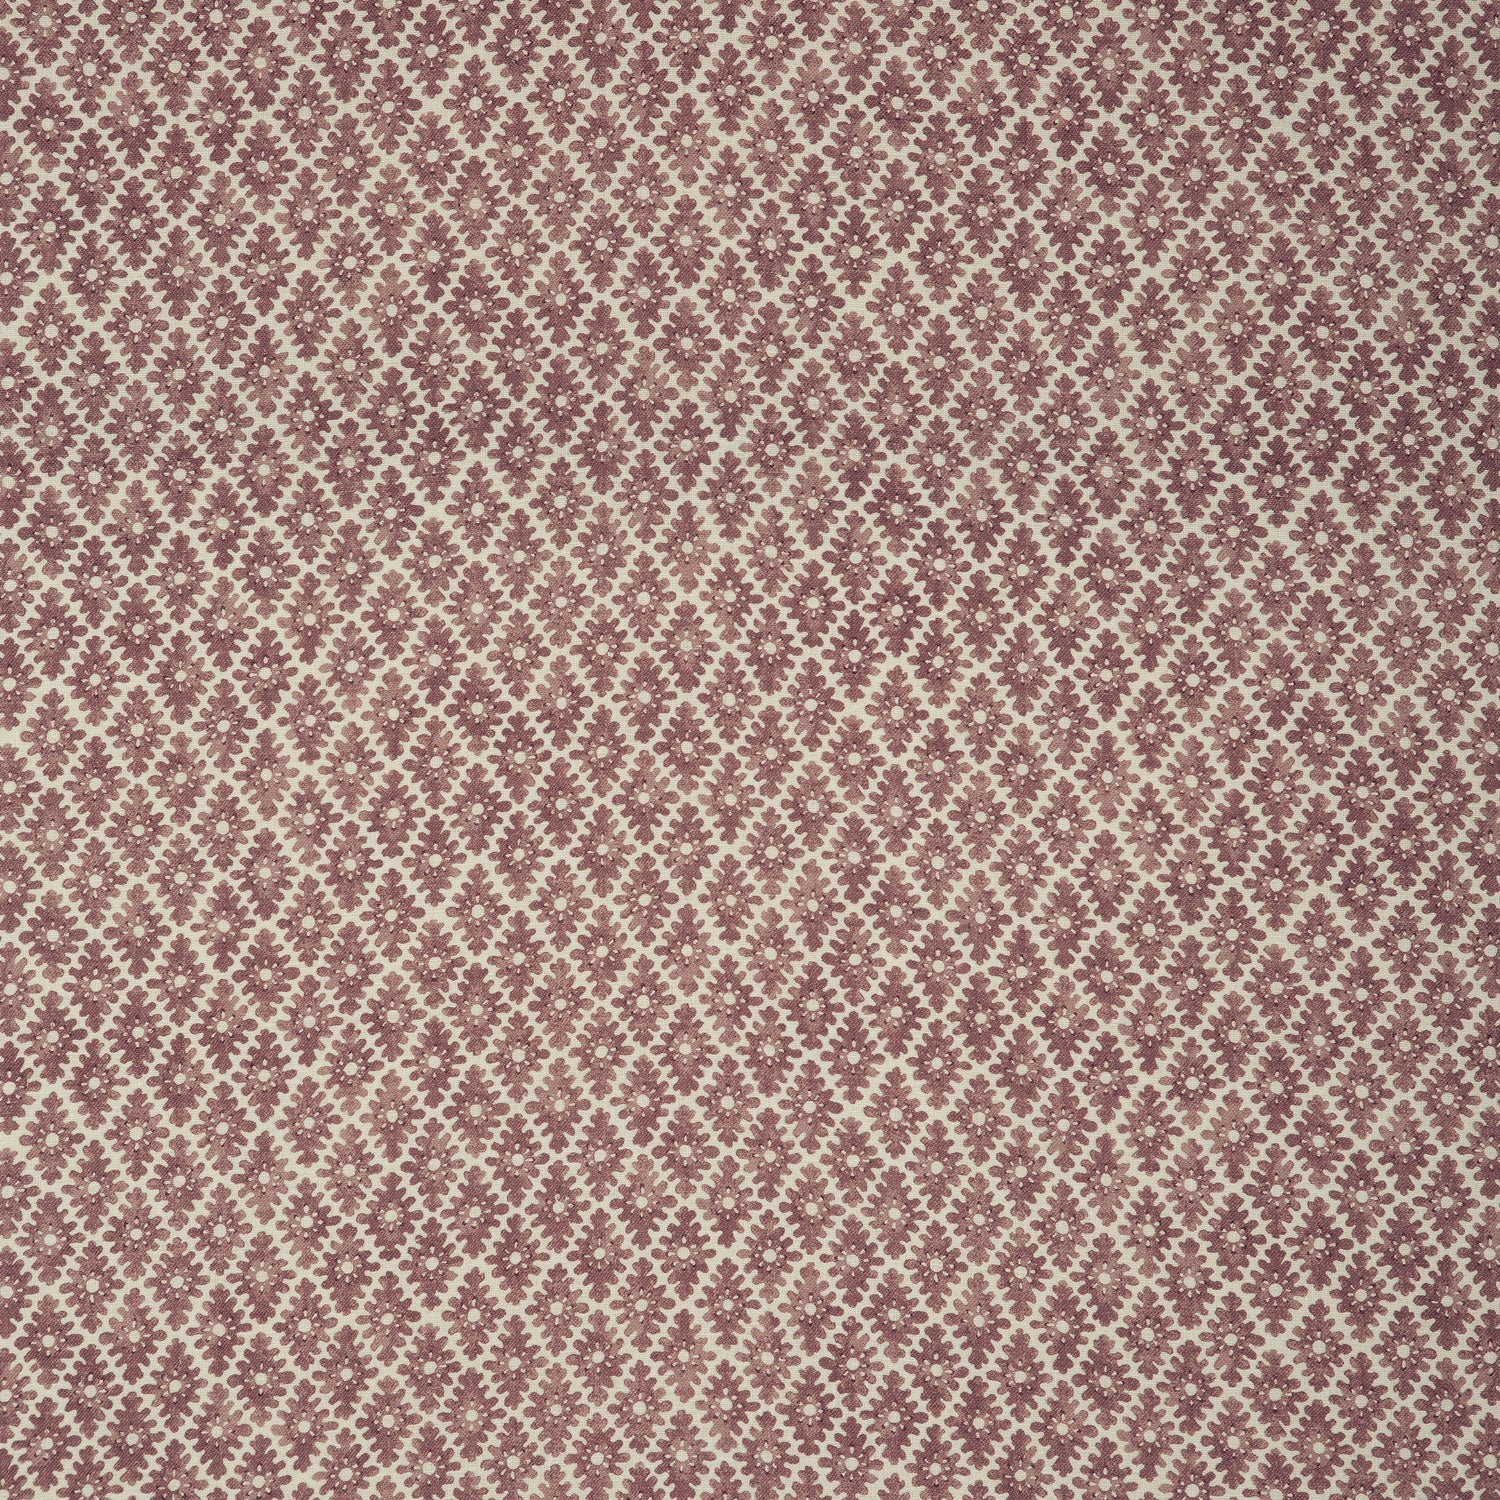 Fabric sample of a berry and neutral printed linen fabric for curtains and upholstery